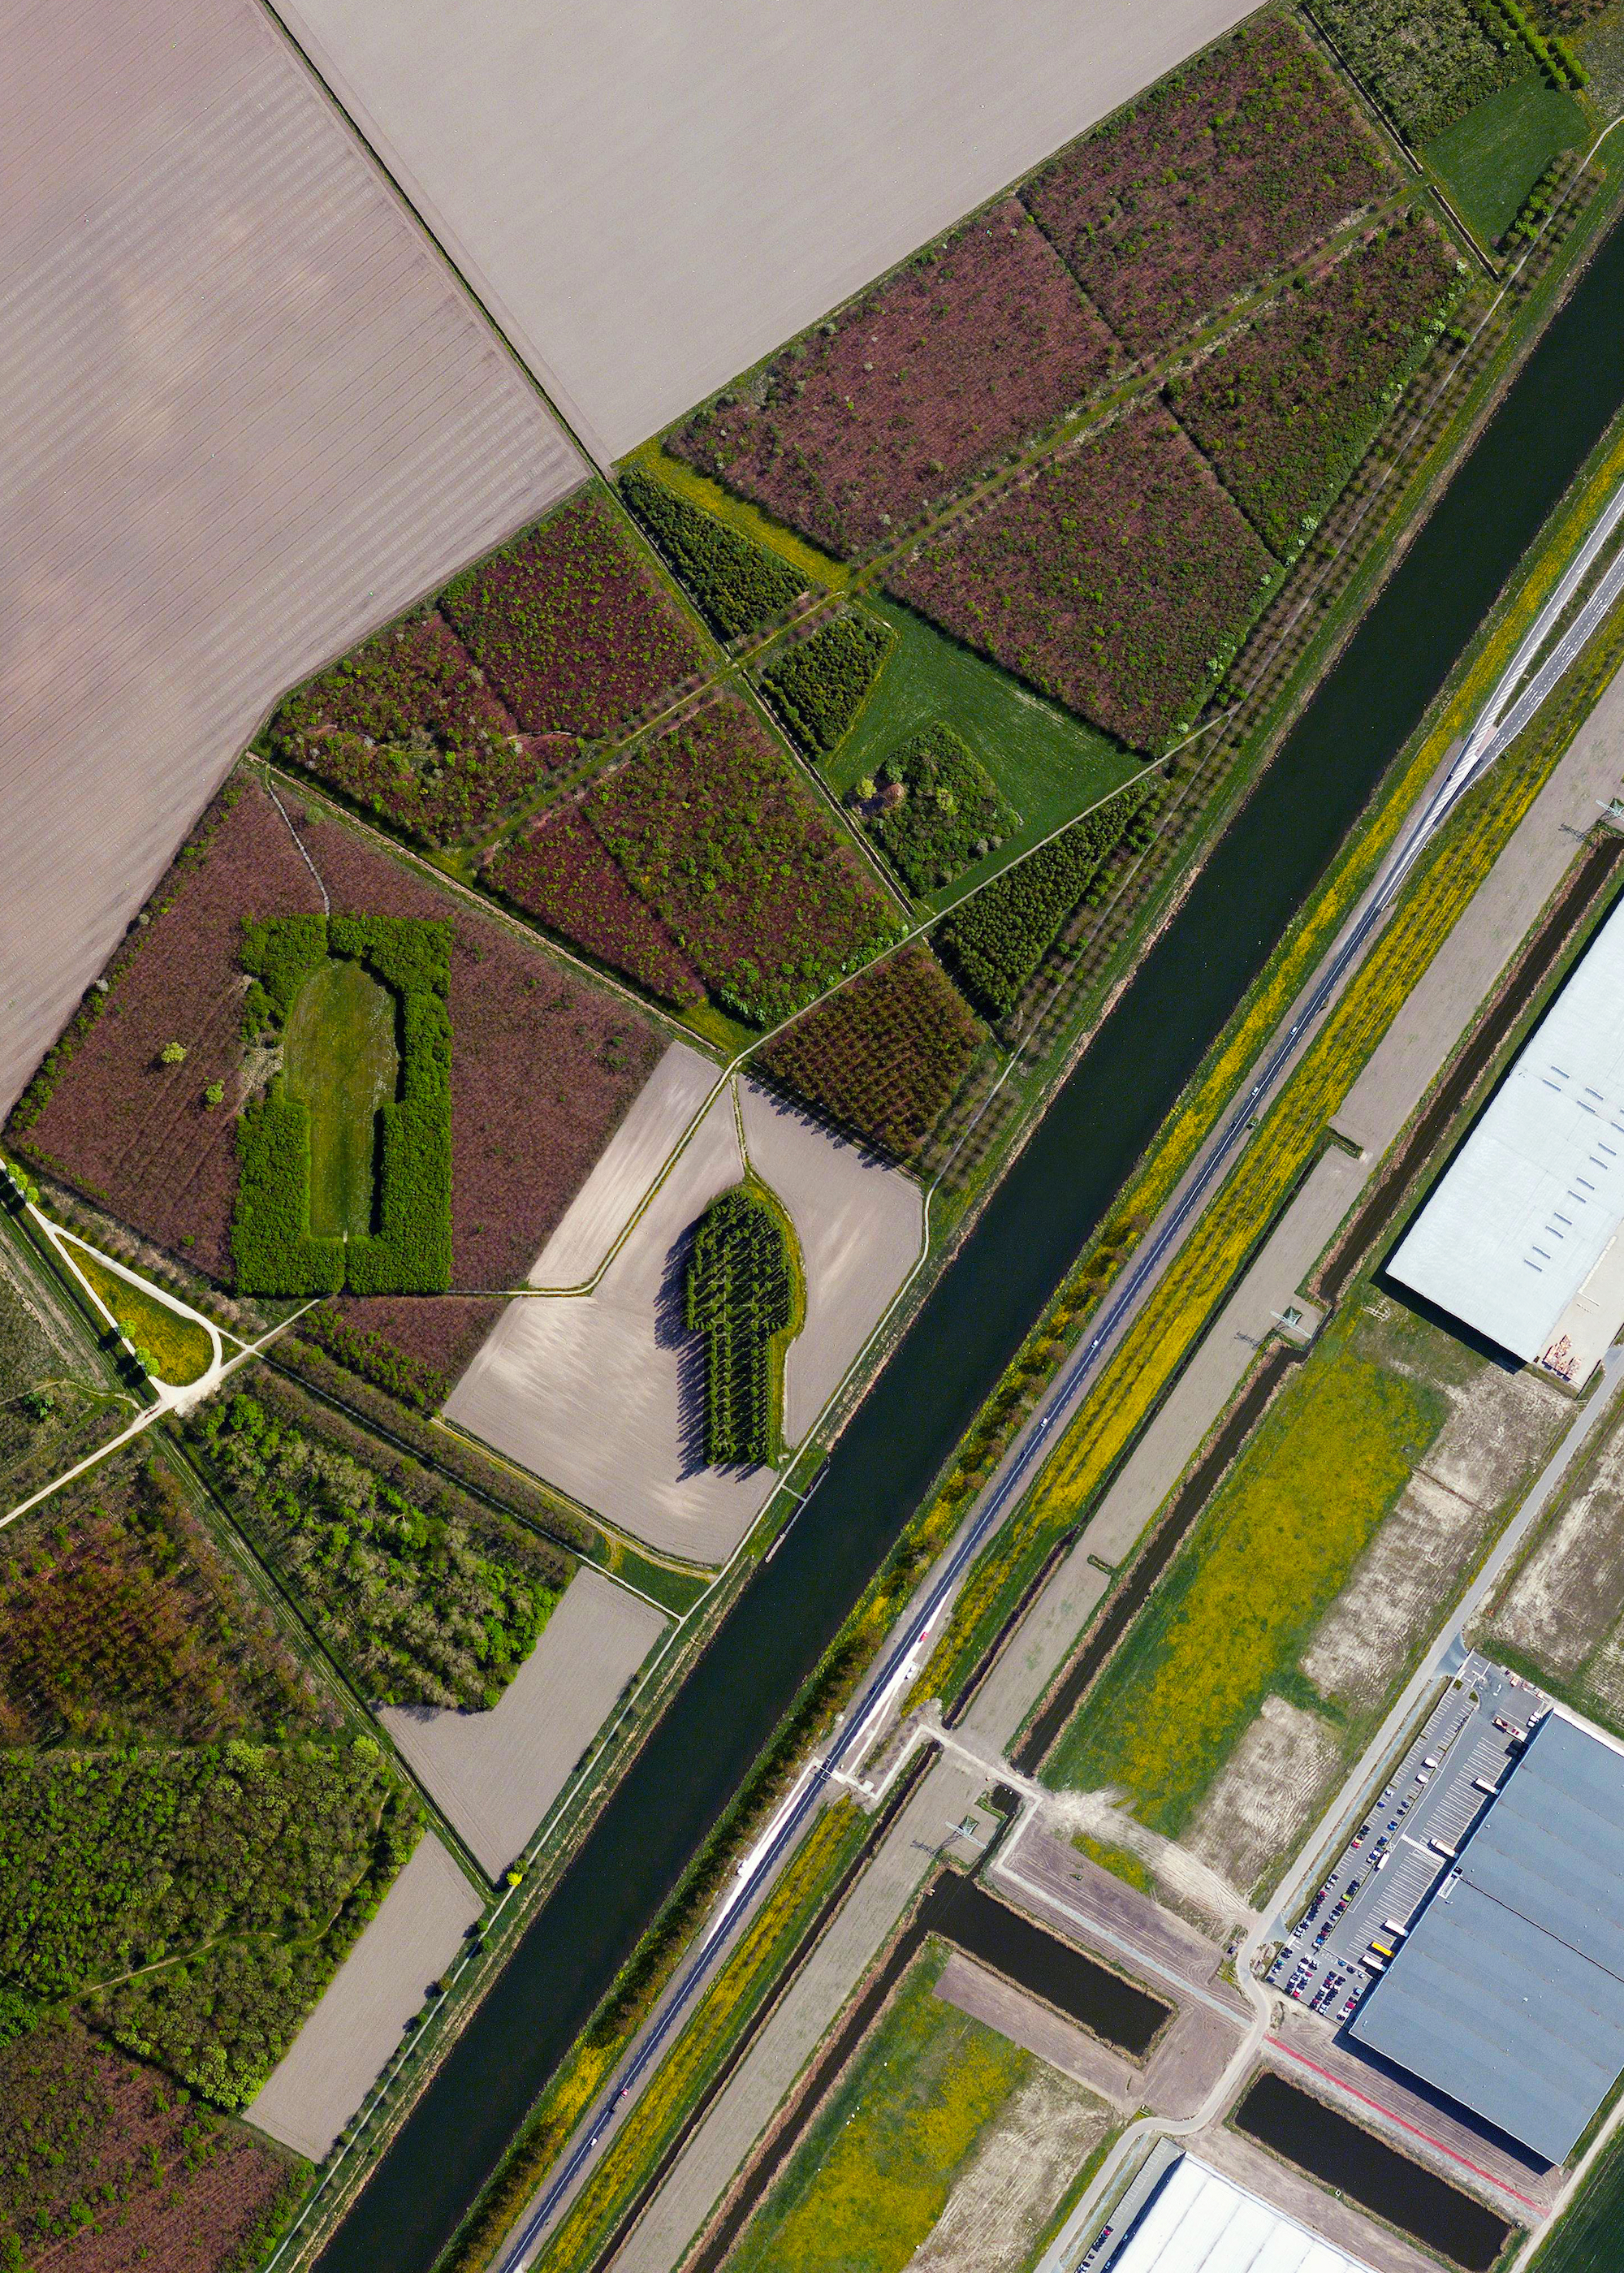 """11/7/2015   The Green Cathedral   Almere, Netherlands   52.323157°N 5.318778°E     Look closely at this Overview and you'll see """"The Green Cathedral"""" - an artistic planting of 178 Lombardy poplar trees near Almere, Netherlands. The """"Cathedral"""" is 50 m (490 ft) long and 75 m (246 ft) wide, which mimics the exact size and shape of the Cathedral of Notre-Dame in Reims, France. The artist, Marinus Boezem, also made a clearing in a nearby beech forest of the same shape to suggest that as the poplars decline, beech trees will fill the empty space to symbolize a cycle of growth and decline."""